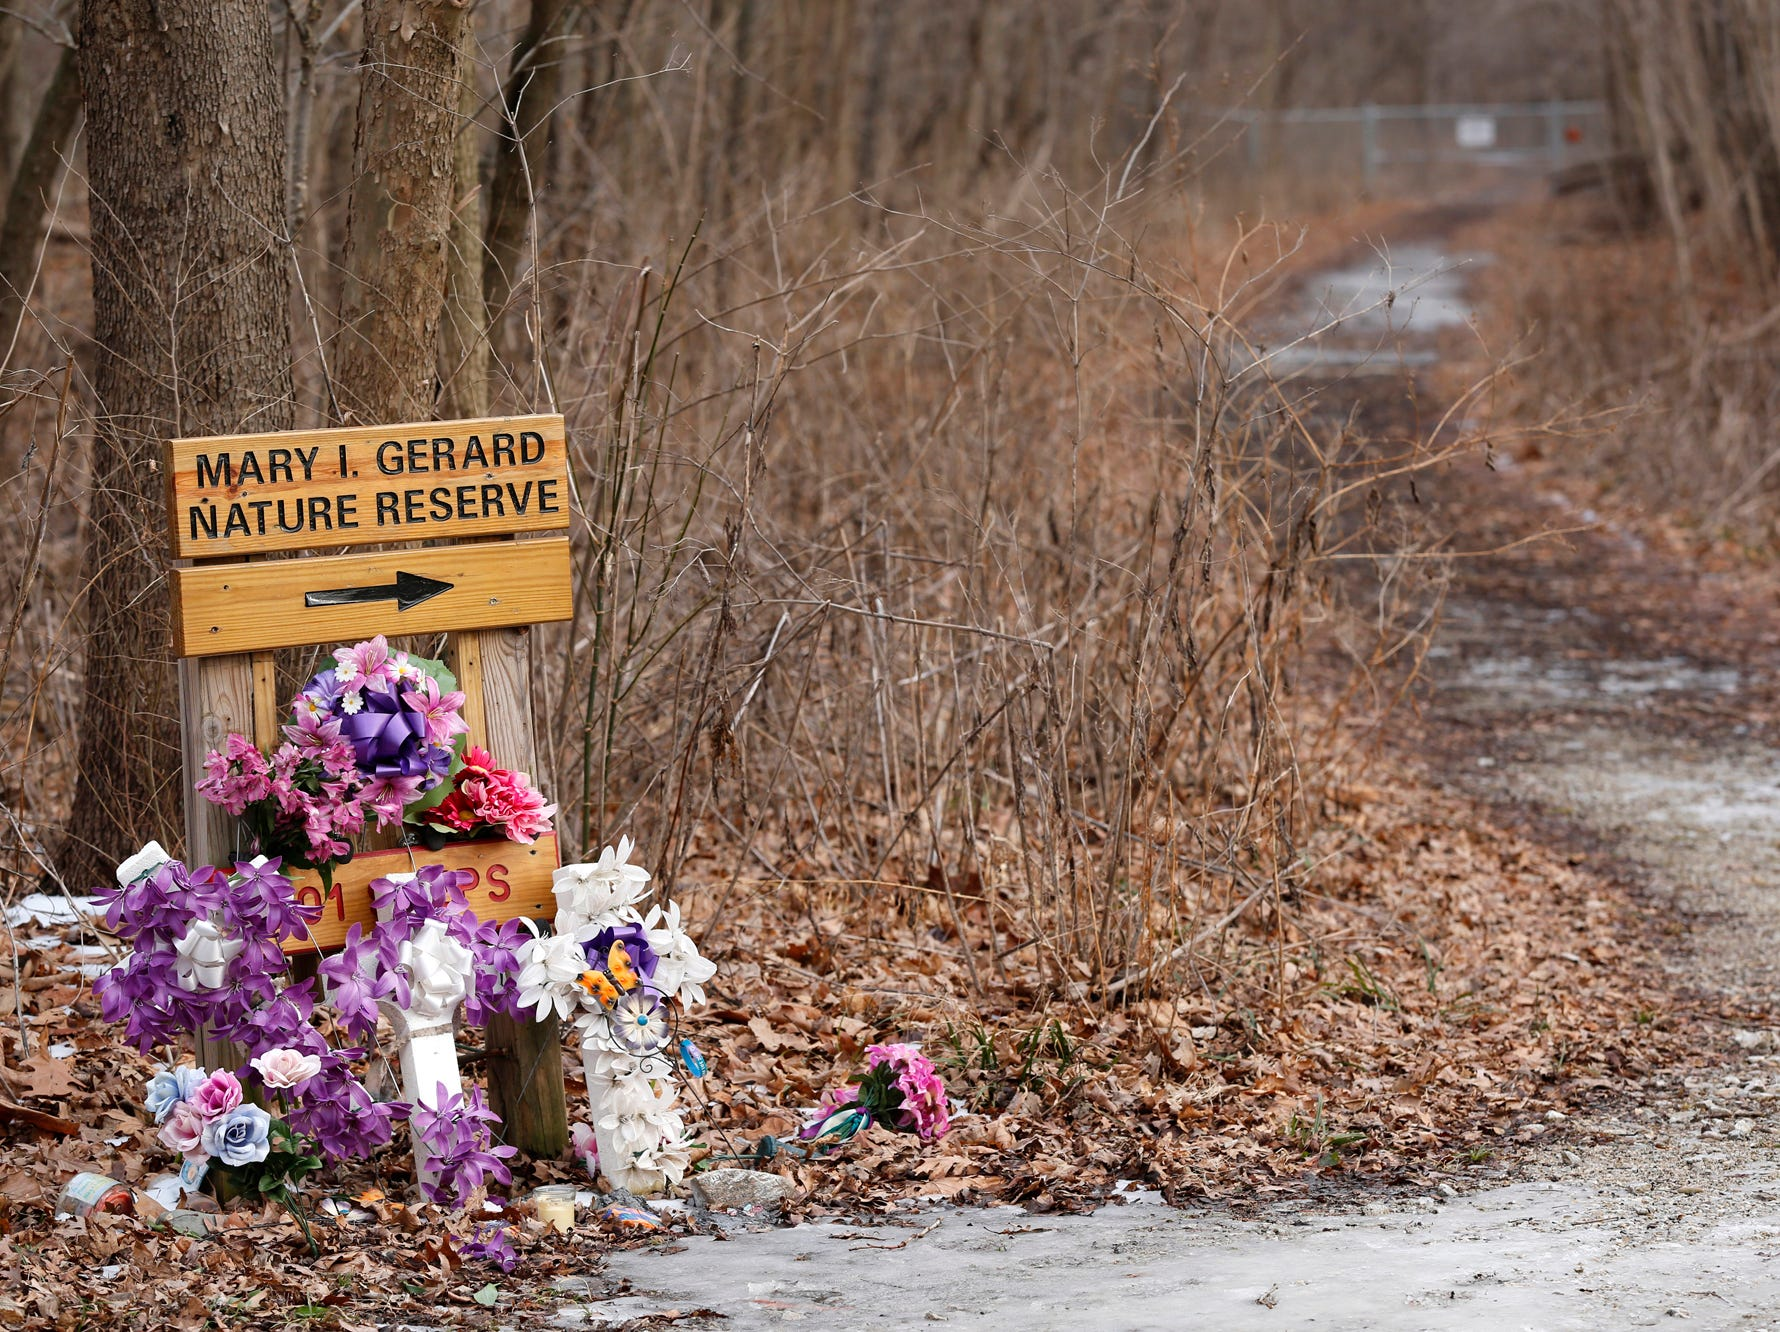 Flowers in memorial to Liberty German and Abigail Williams Tuesday, February 13, 2018, at the trail head of the Monon High Bridge Trail just east of Delphi. German and Williams were murdered February 13, 2017, as they hiked the Monon High Bridge Trail.